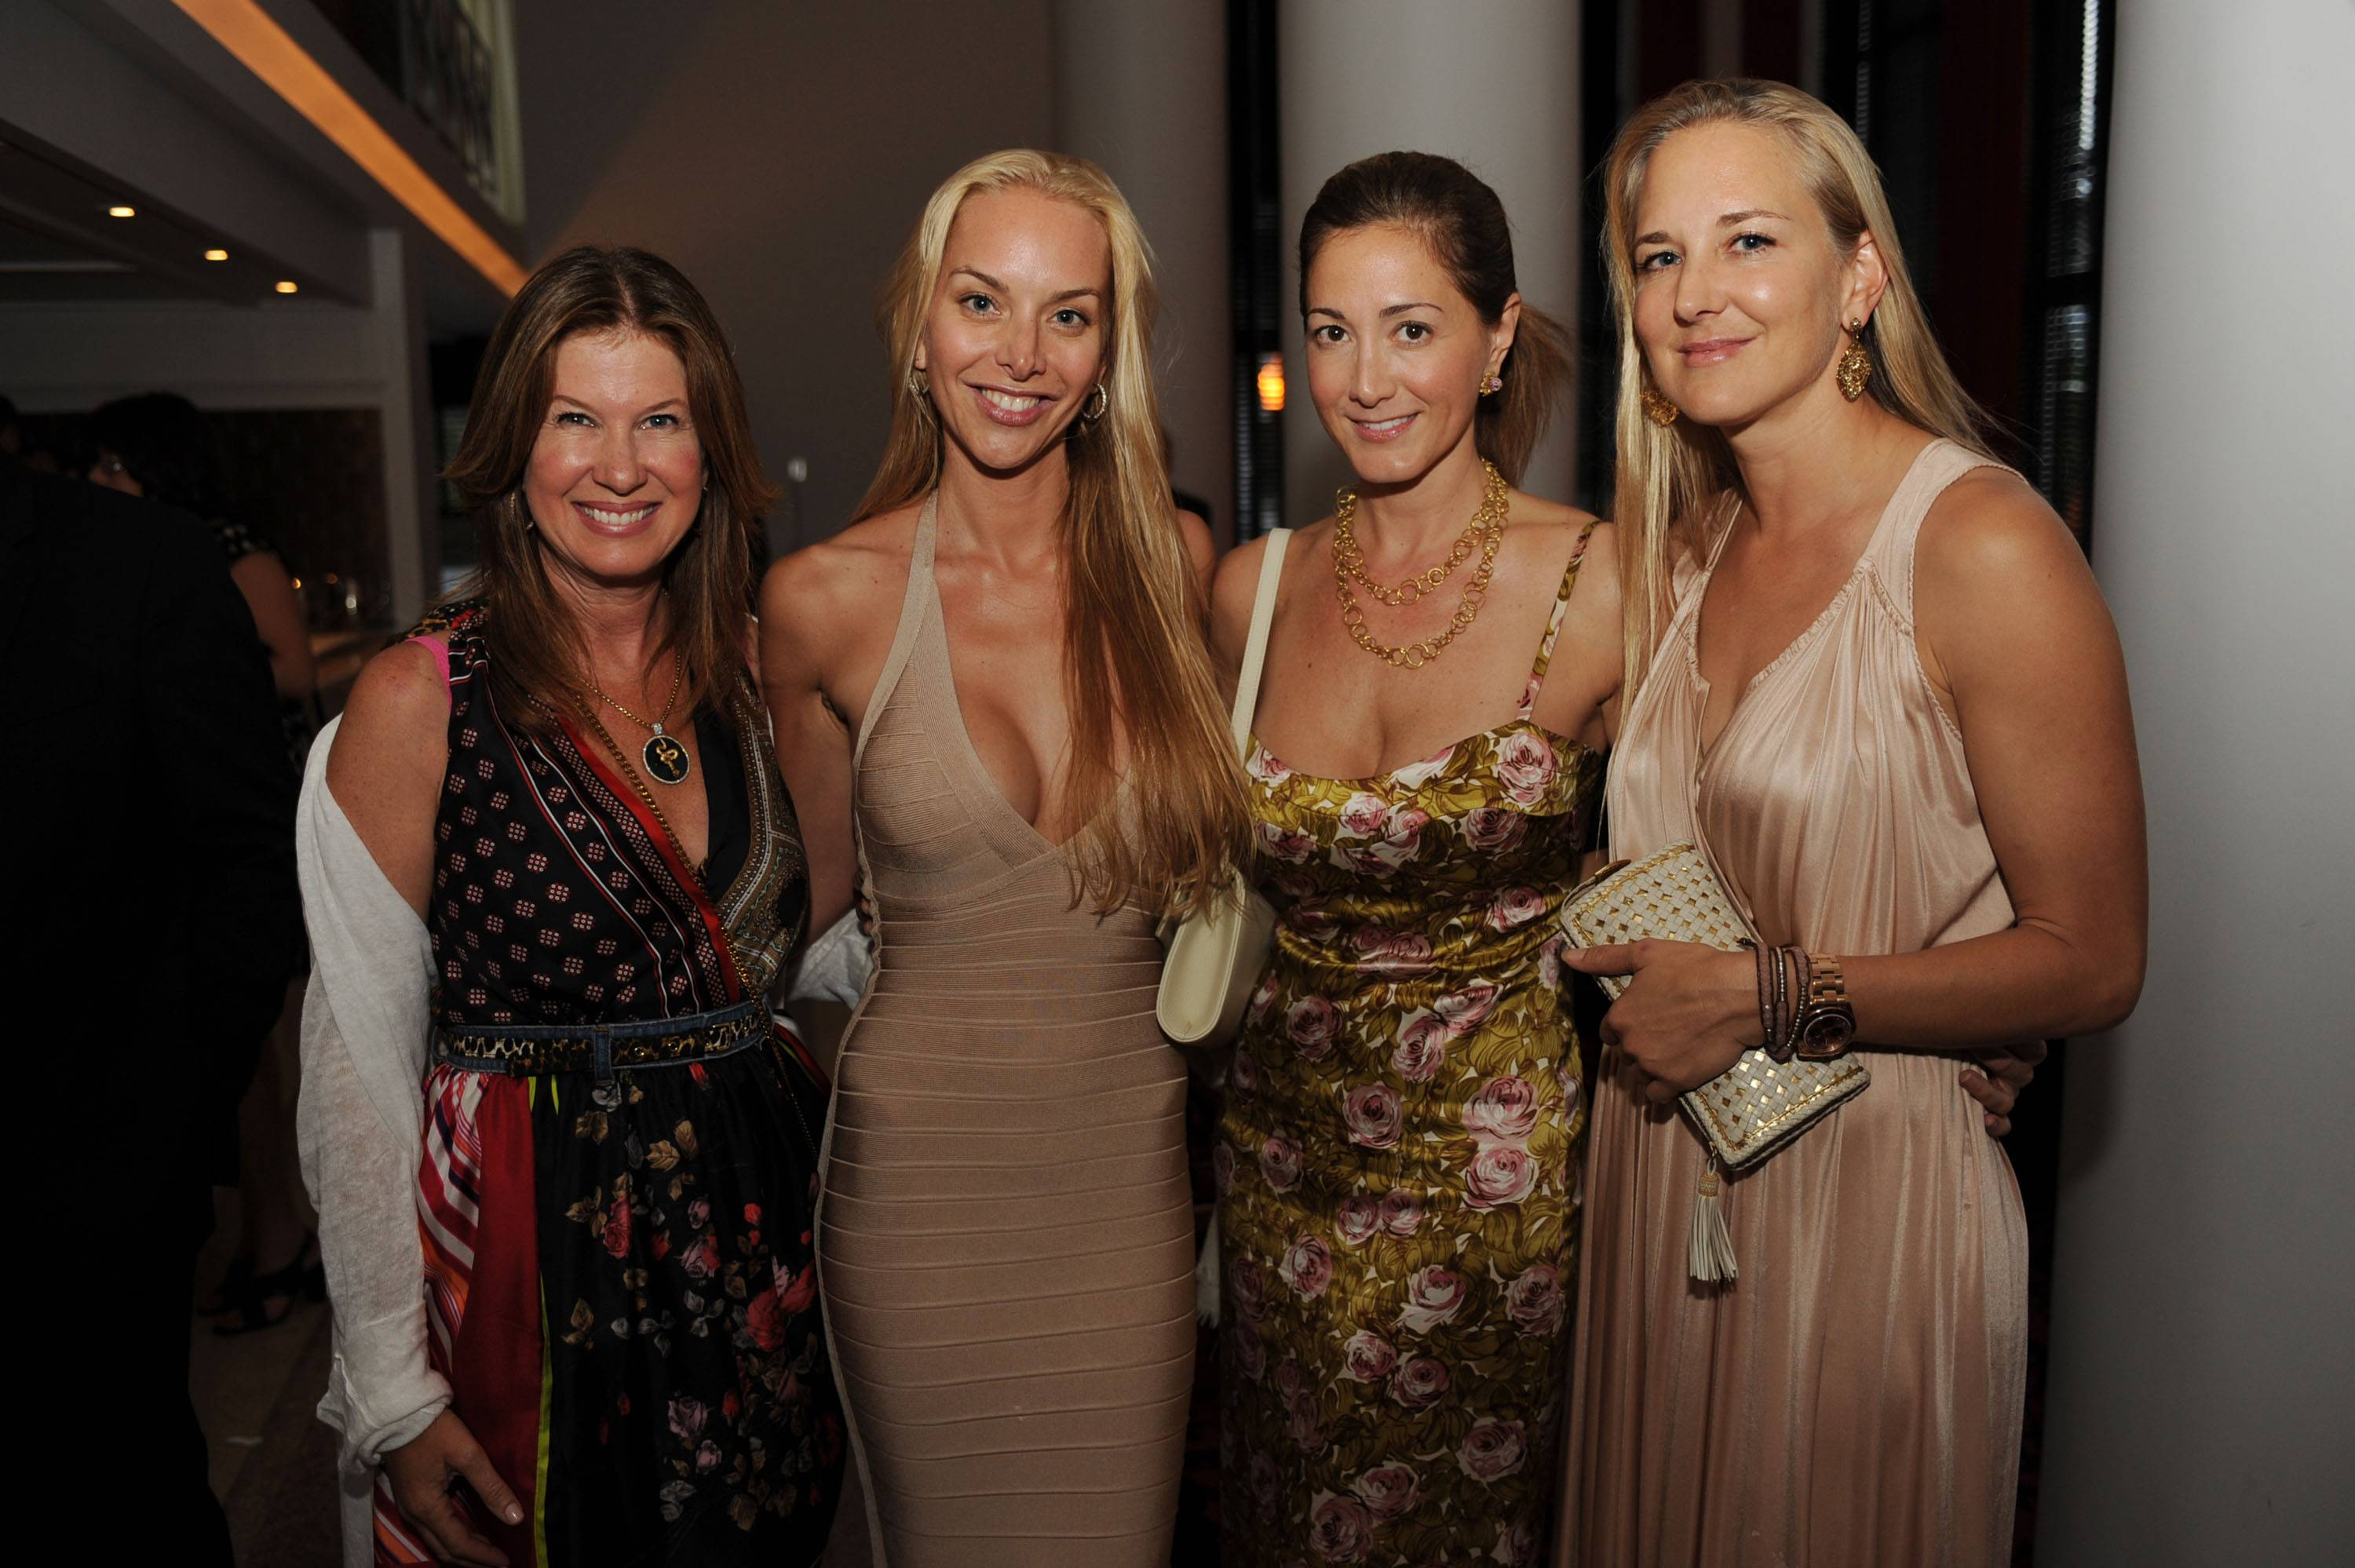 Dana Shear, Christina Getty-Maercks, Laura Buccellati, & Getty-Dupreez